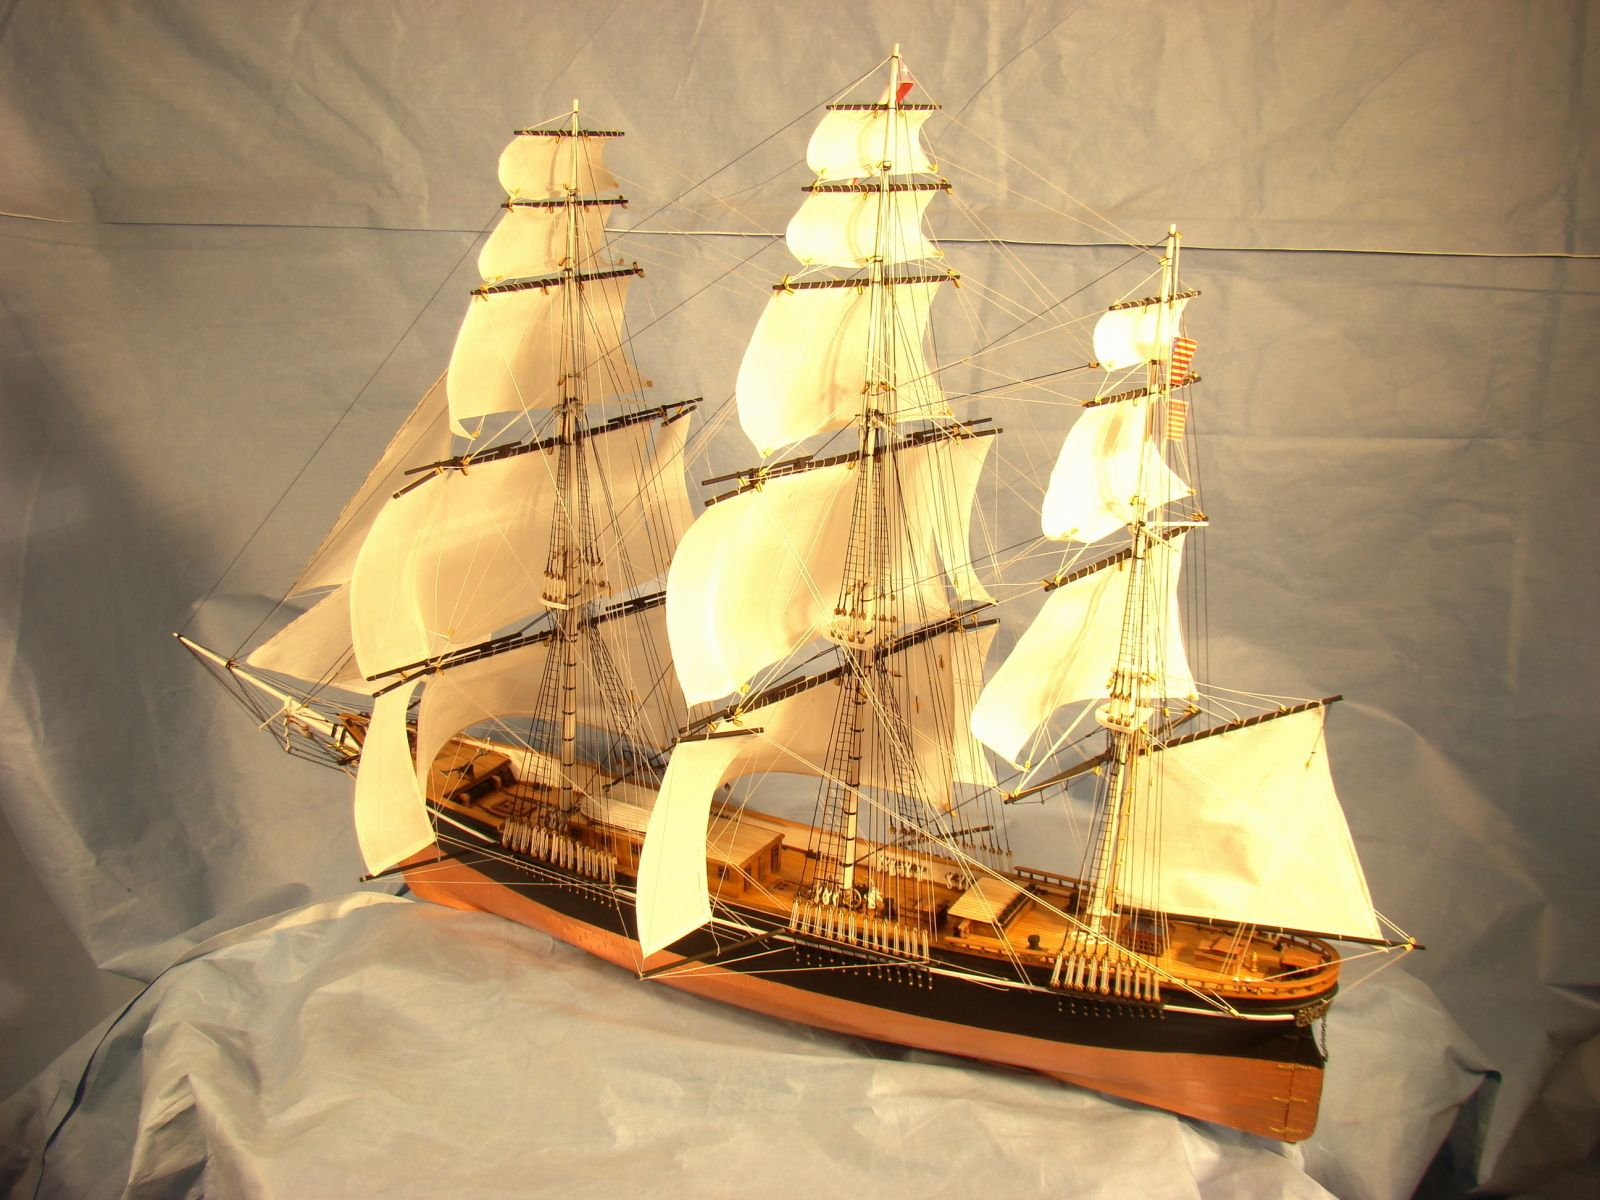 Pin By Jason Wolf On Boats Pinterest Cloud And Boating Sailing Ship Diagrams Scale Model Ships Models Wooden Tall Clouds Wood Coasters